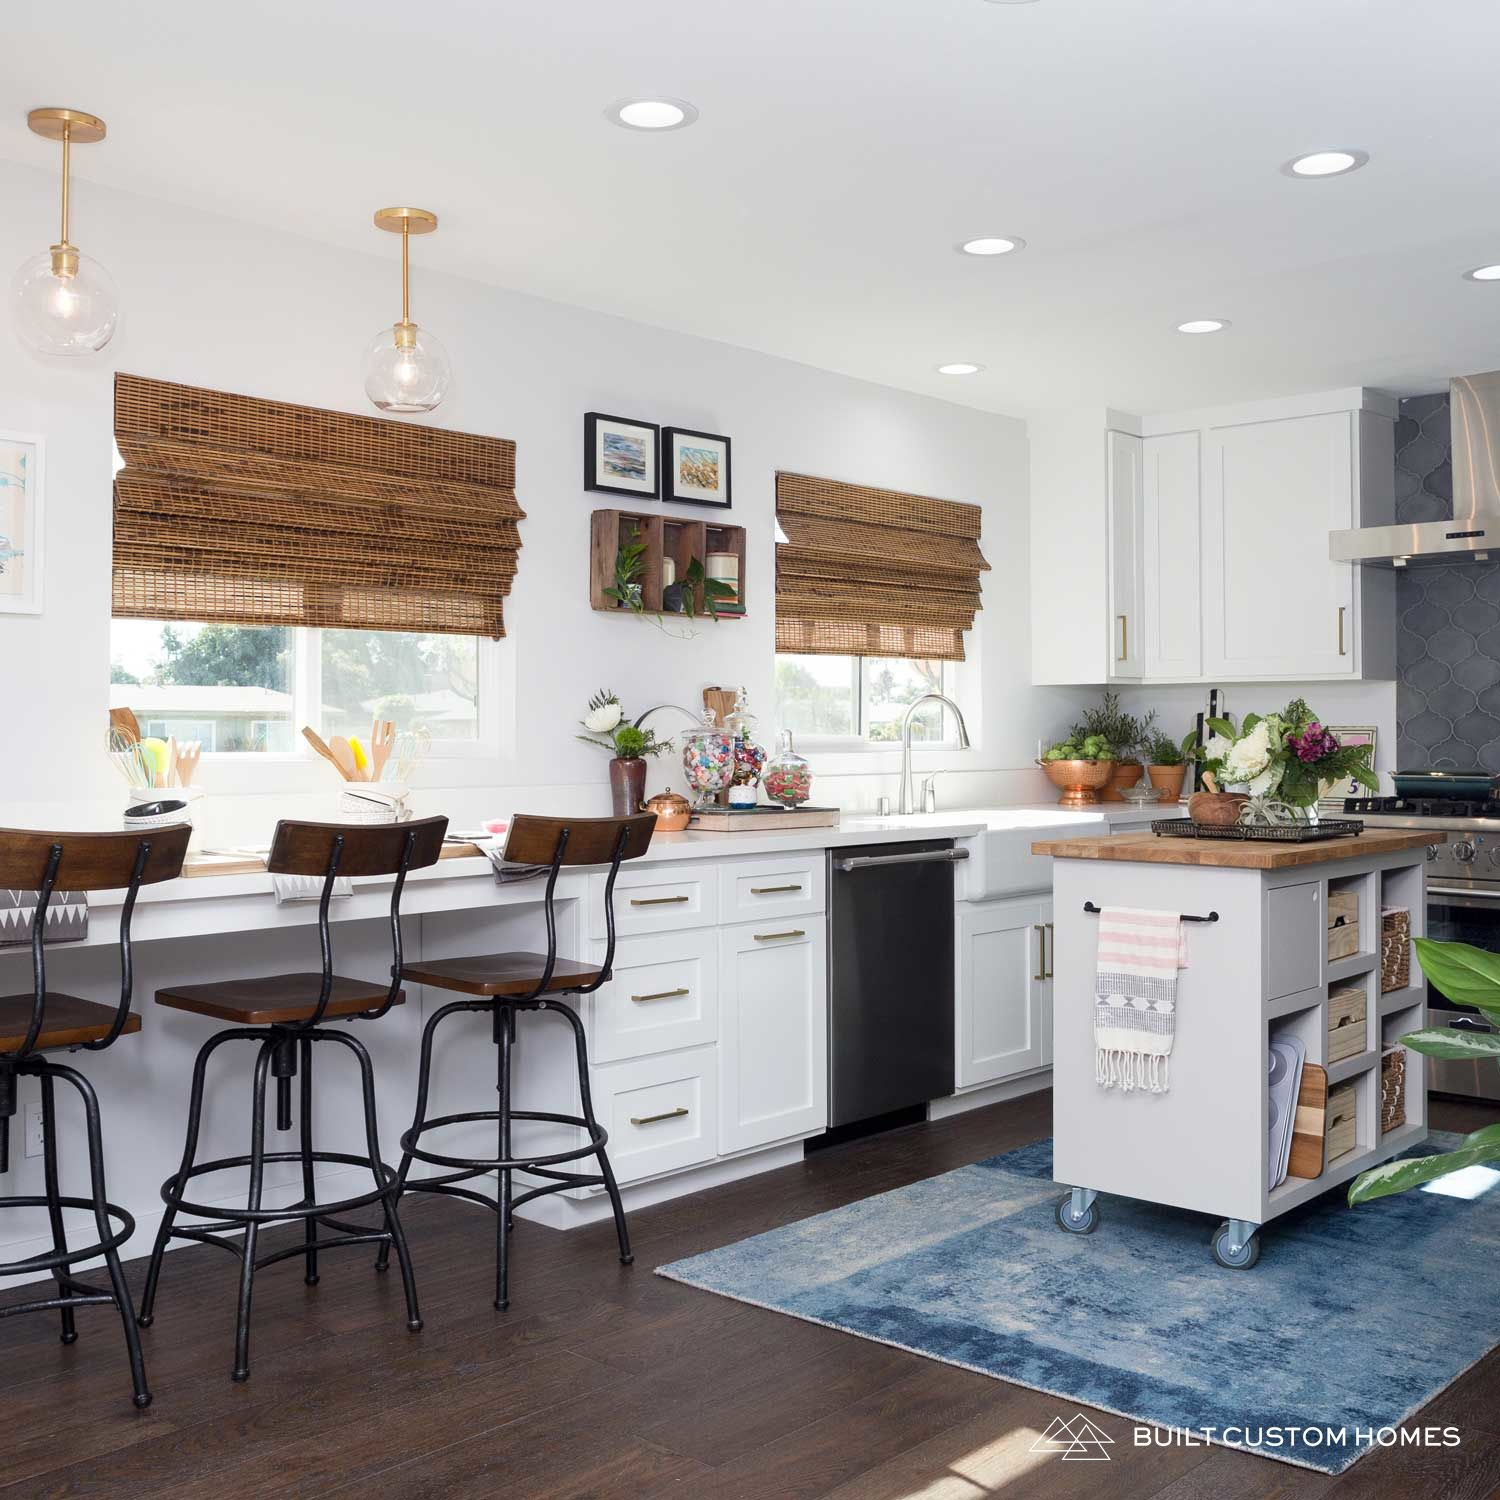 Ep 3 Kitchen From Woeful to Whimsical The Blog by